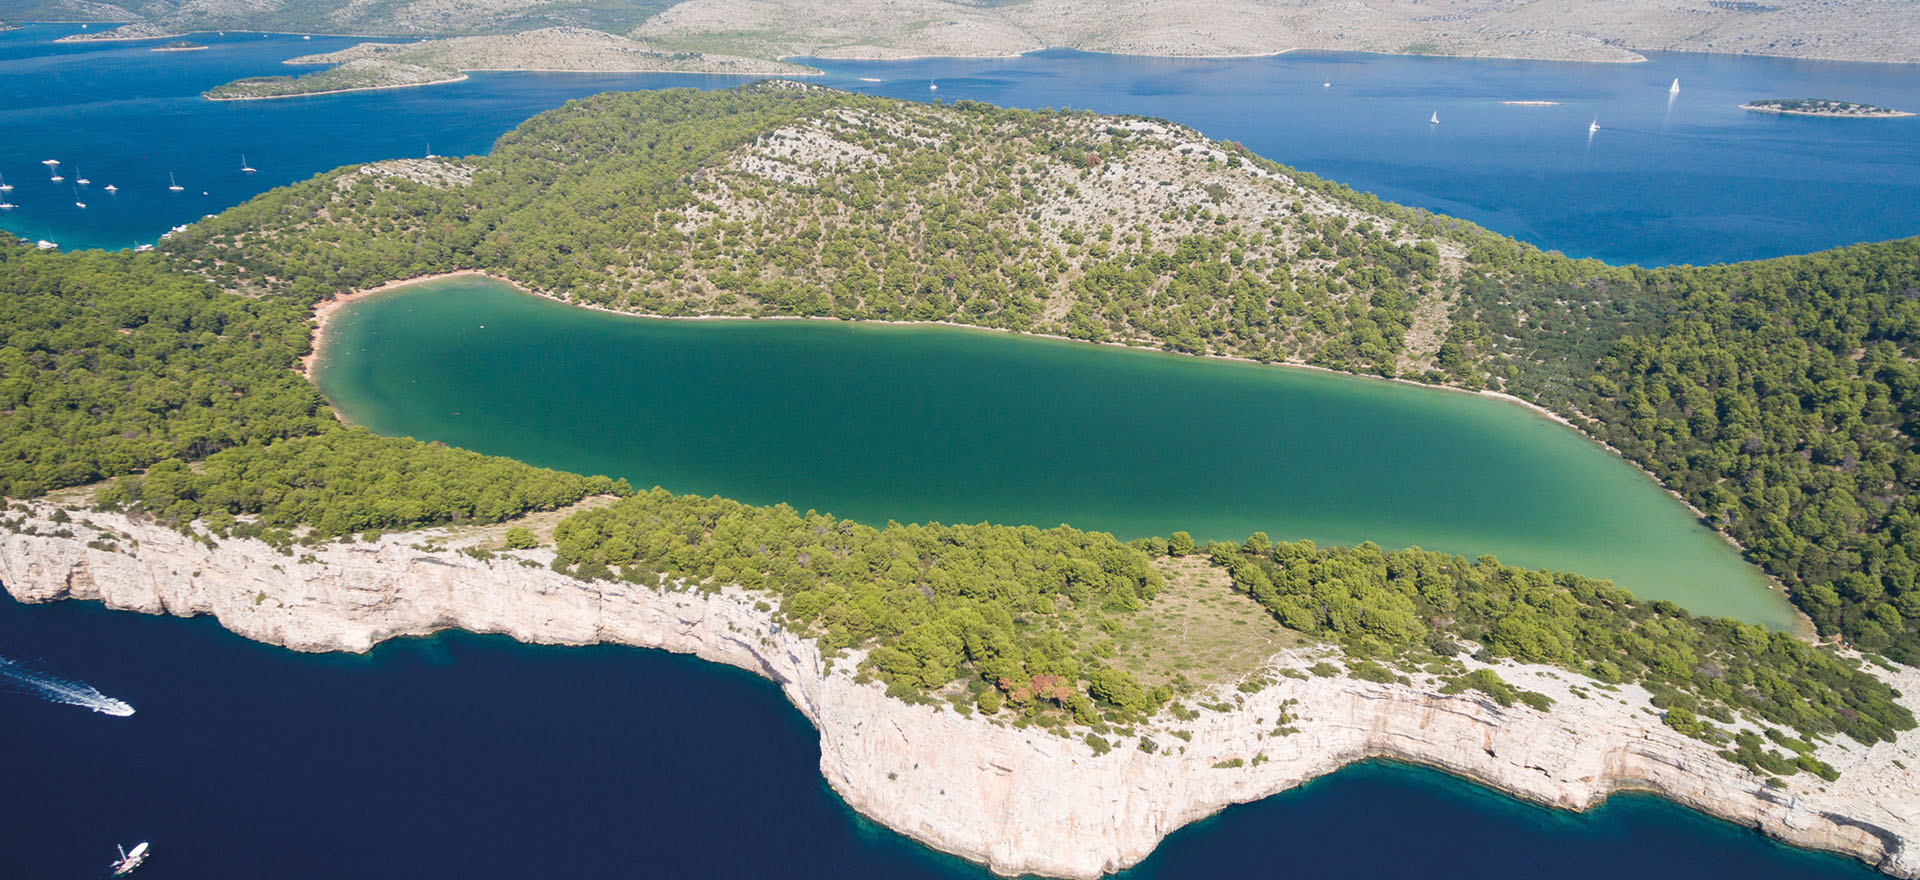 Telascica bay water and nature park in Dugi Otok island | Dugi Otok, Croatia